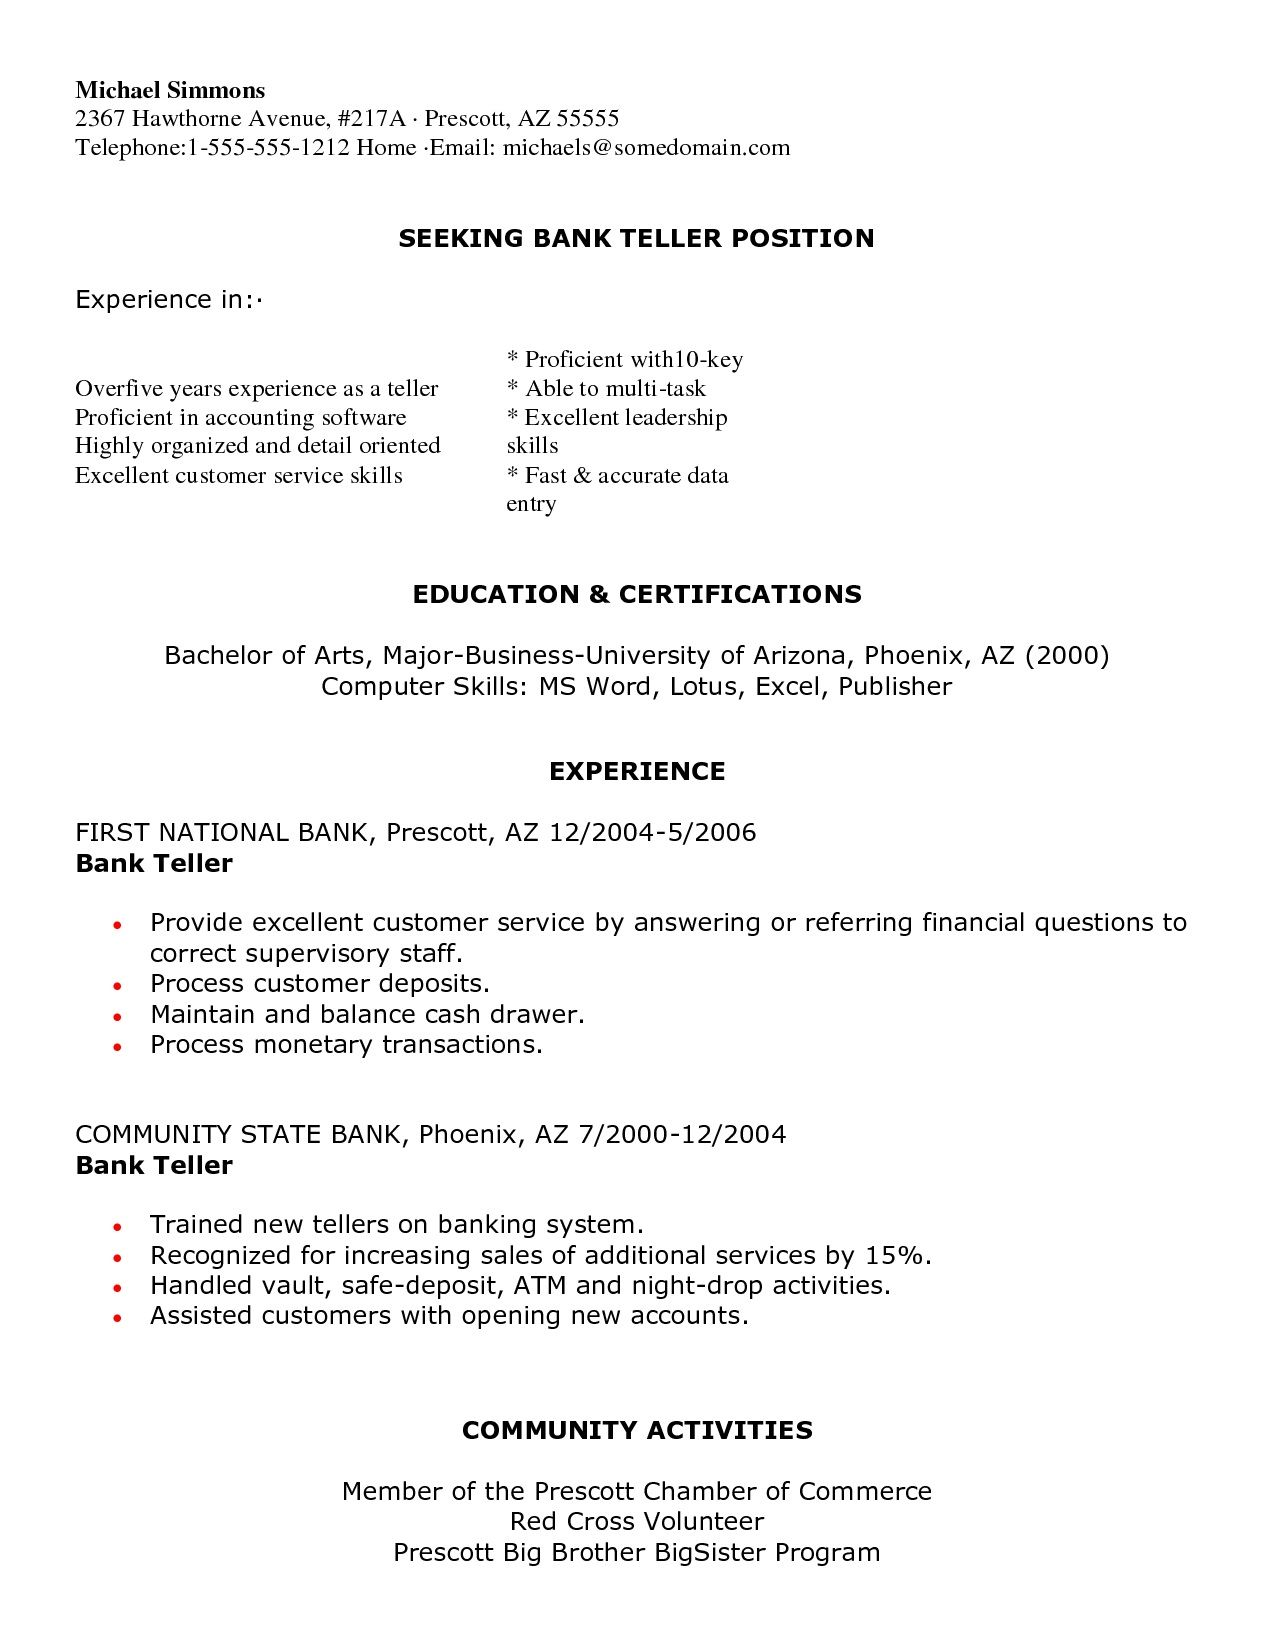 Bank Teller Resume  Bank Teller Resume We Provide As Reference To